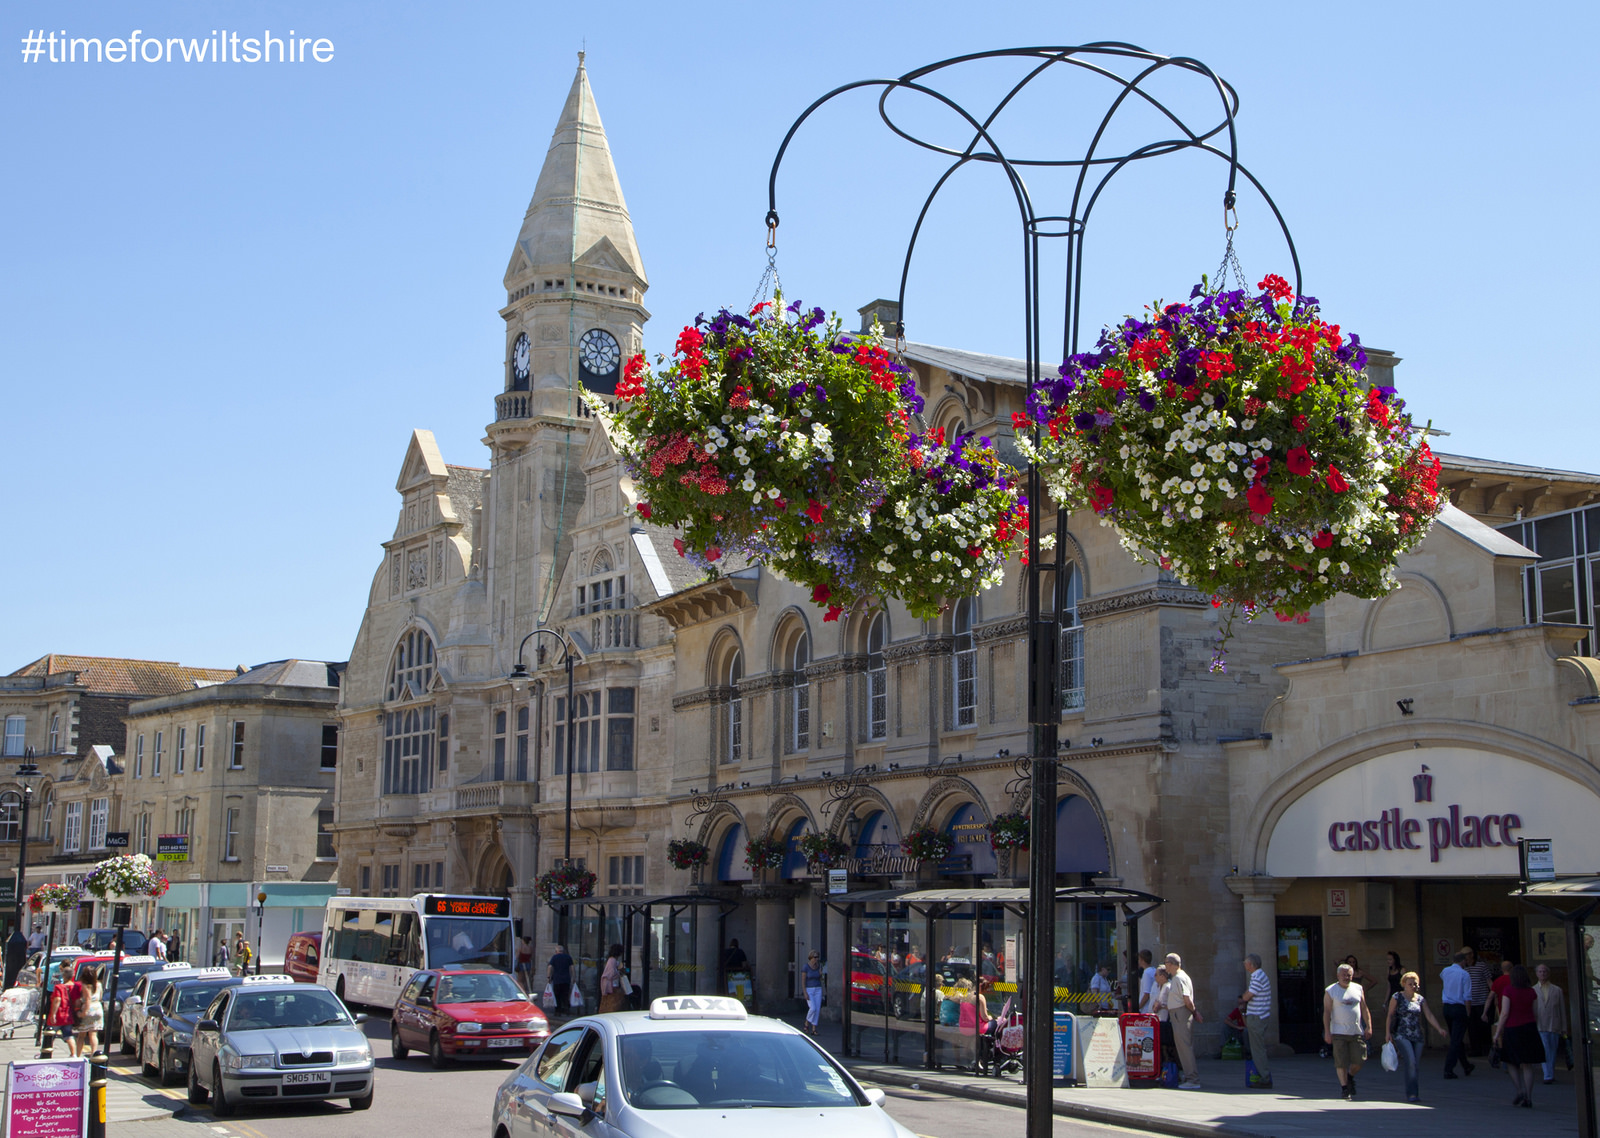 Trowbridge Town Hall shows summer flower displays and hanging baskets © Visit Wiltshire